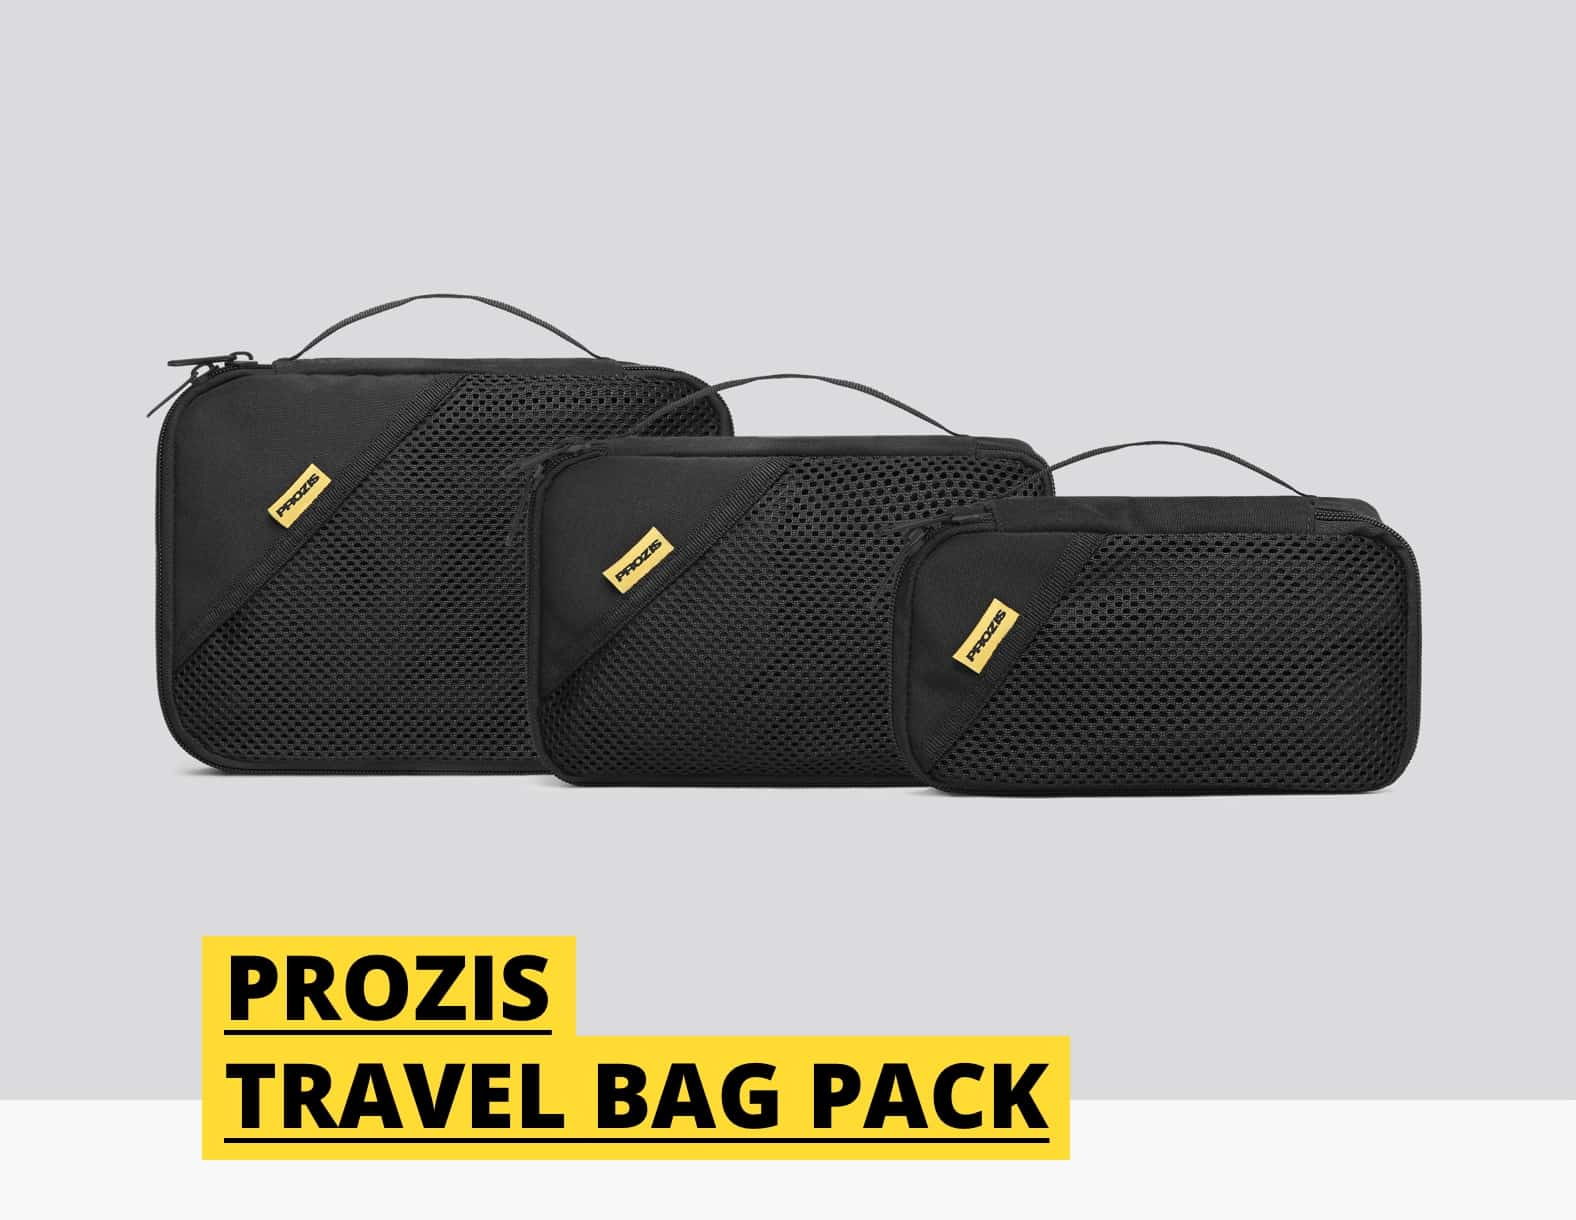 Prozis Travel Bag